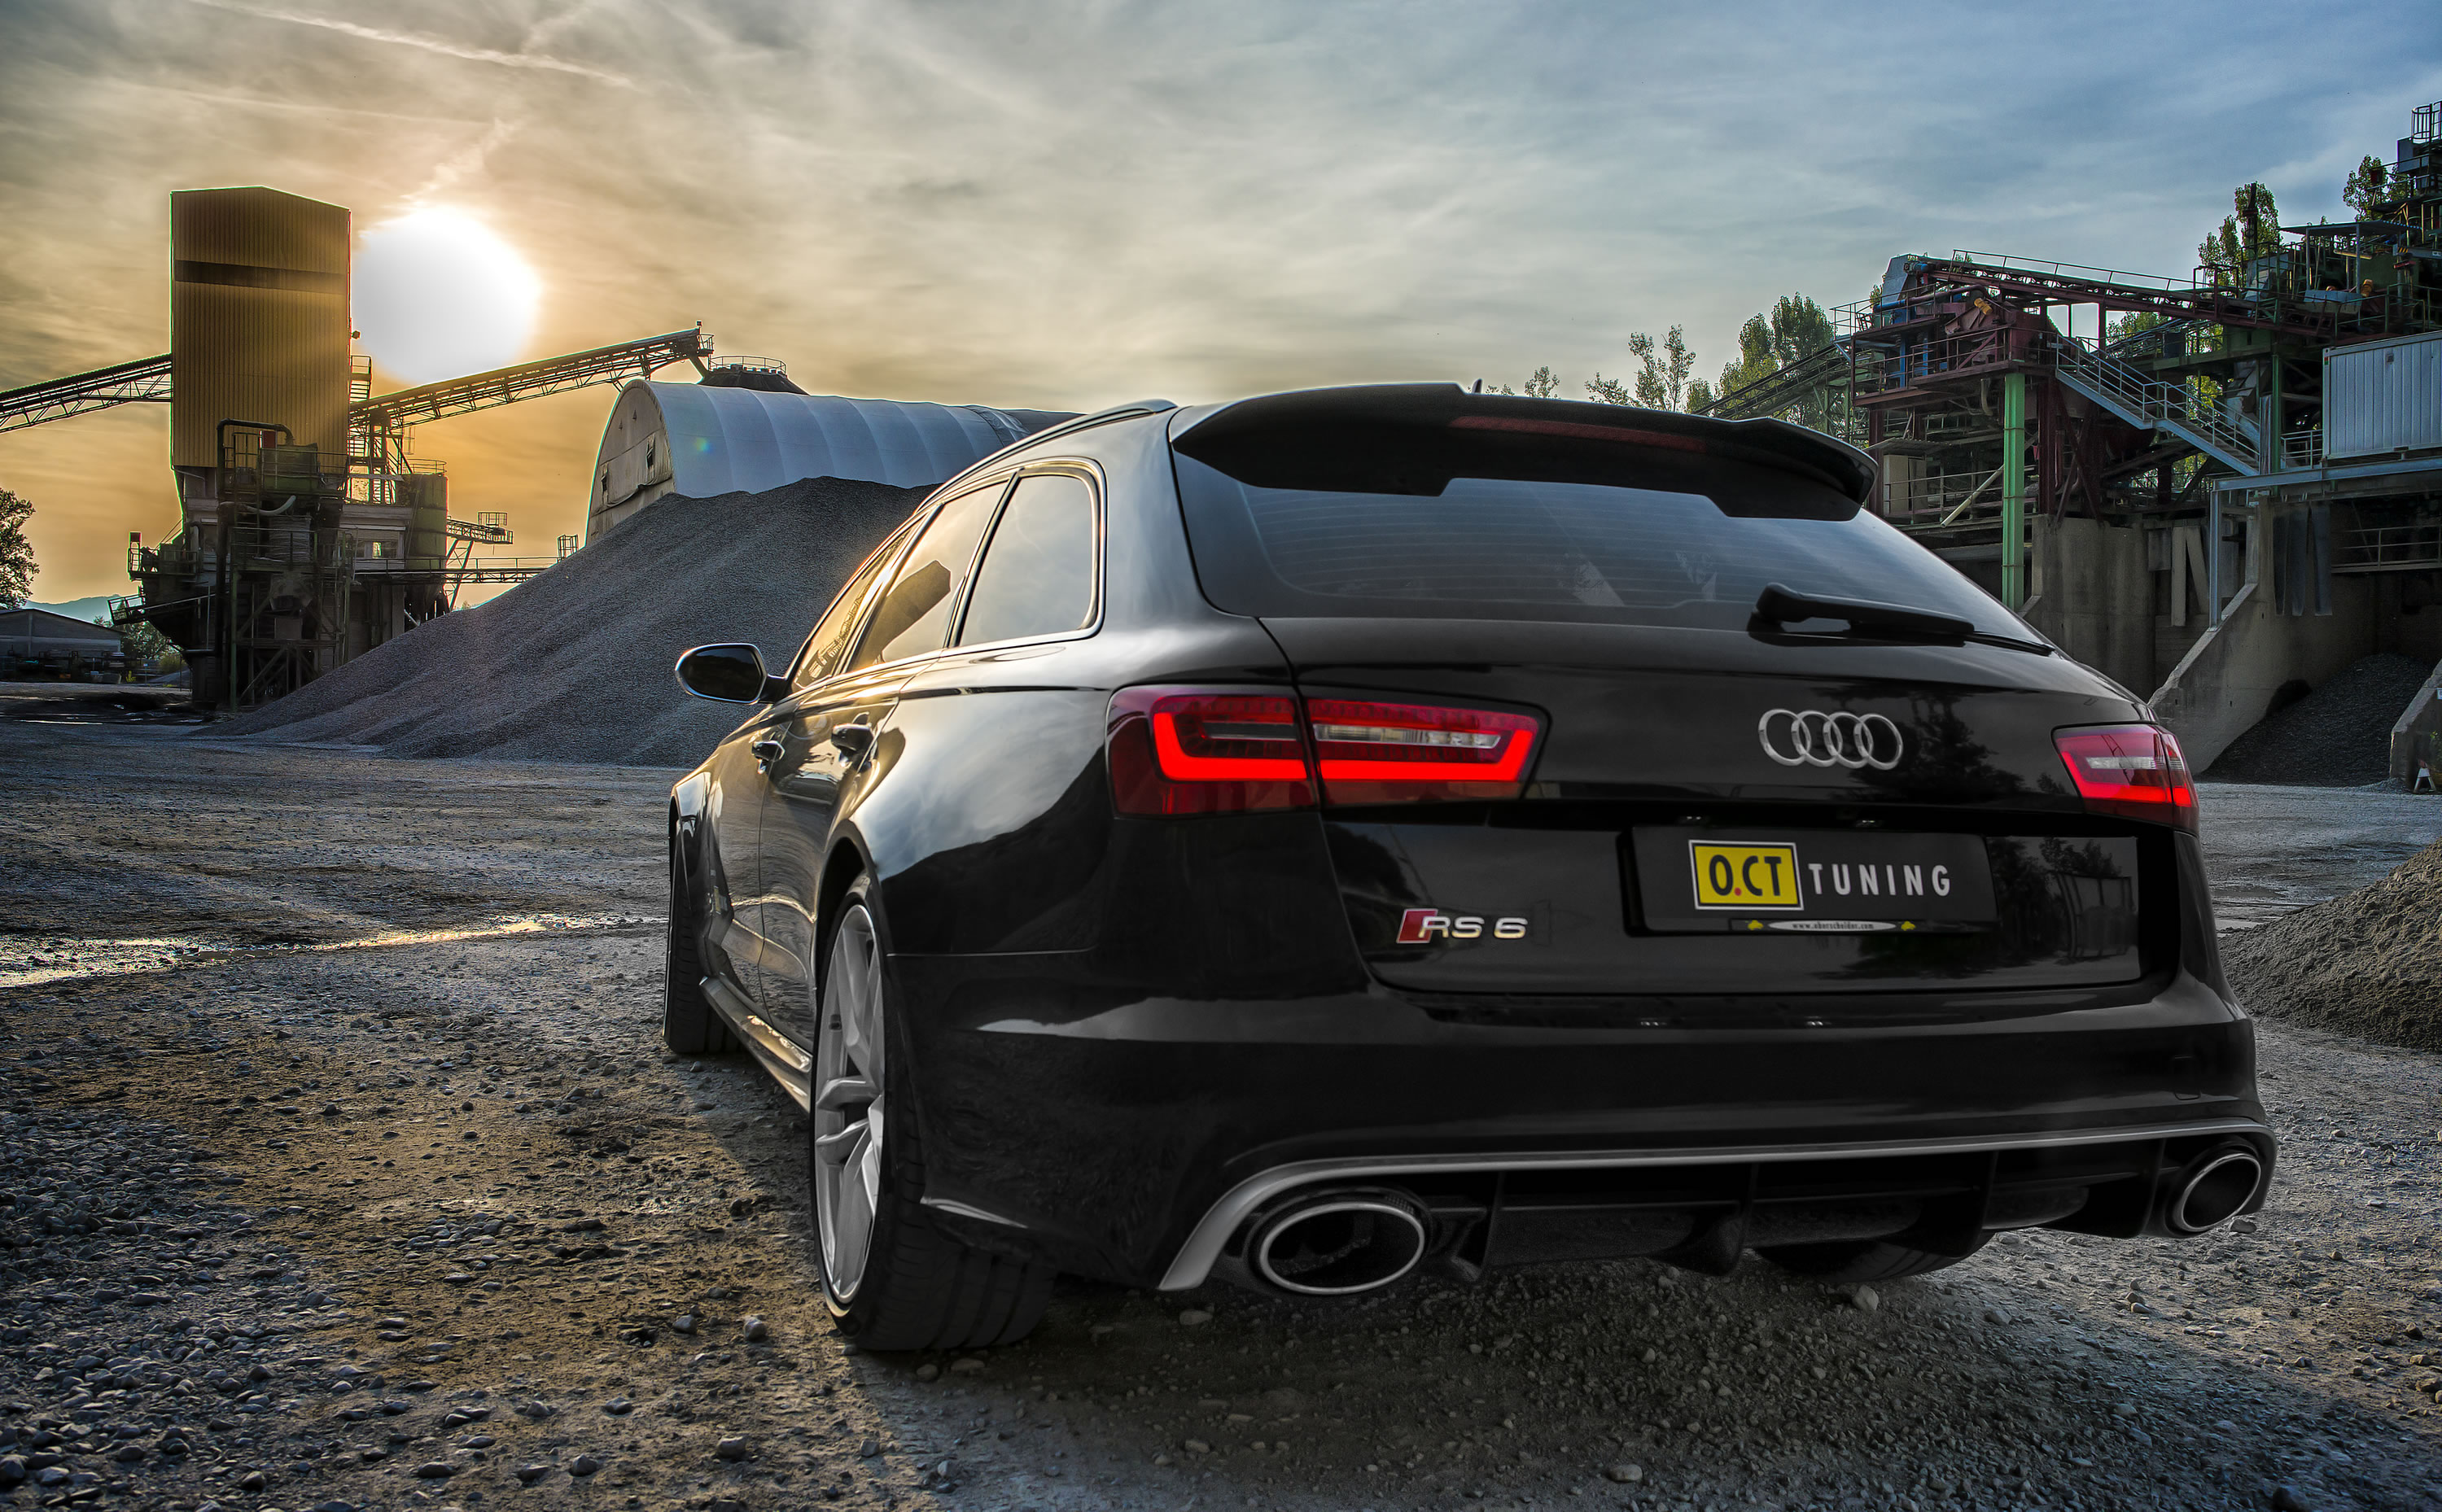 2013 audi rs6 avant 4 0 tfsi quattro by o ct photos specs and review rs. Black Bedroom Furniture Sets. Home Design Ideas